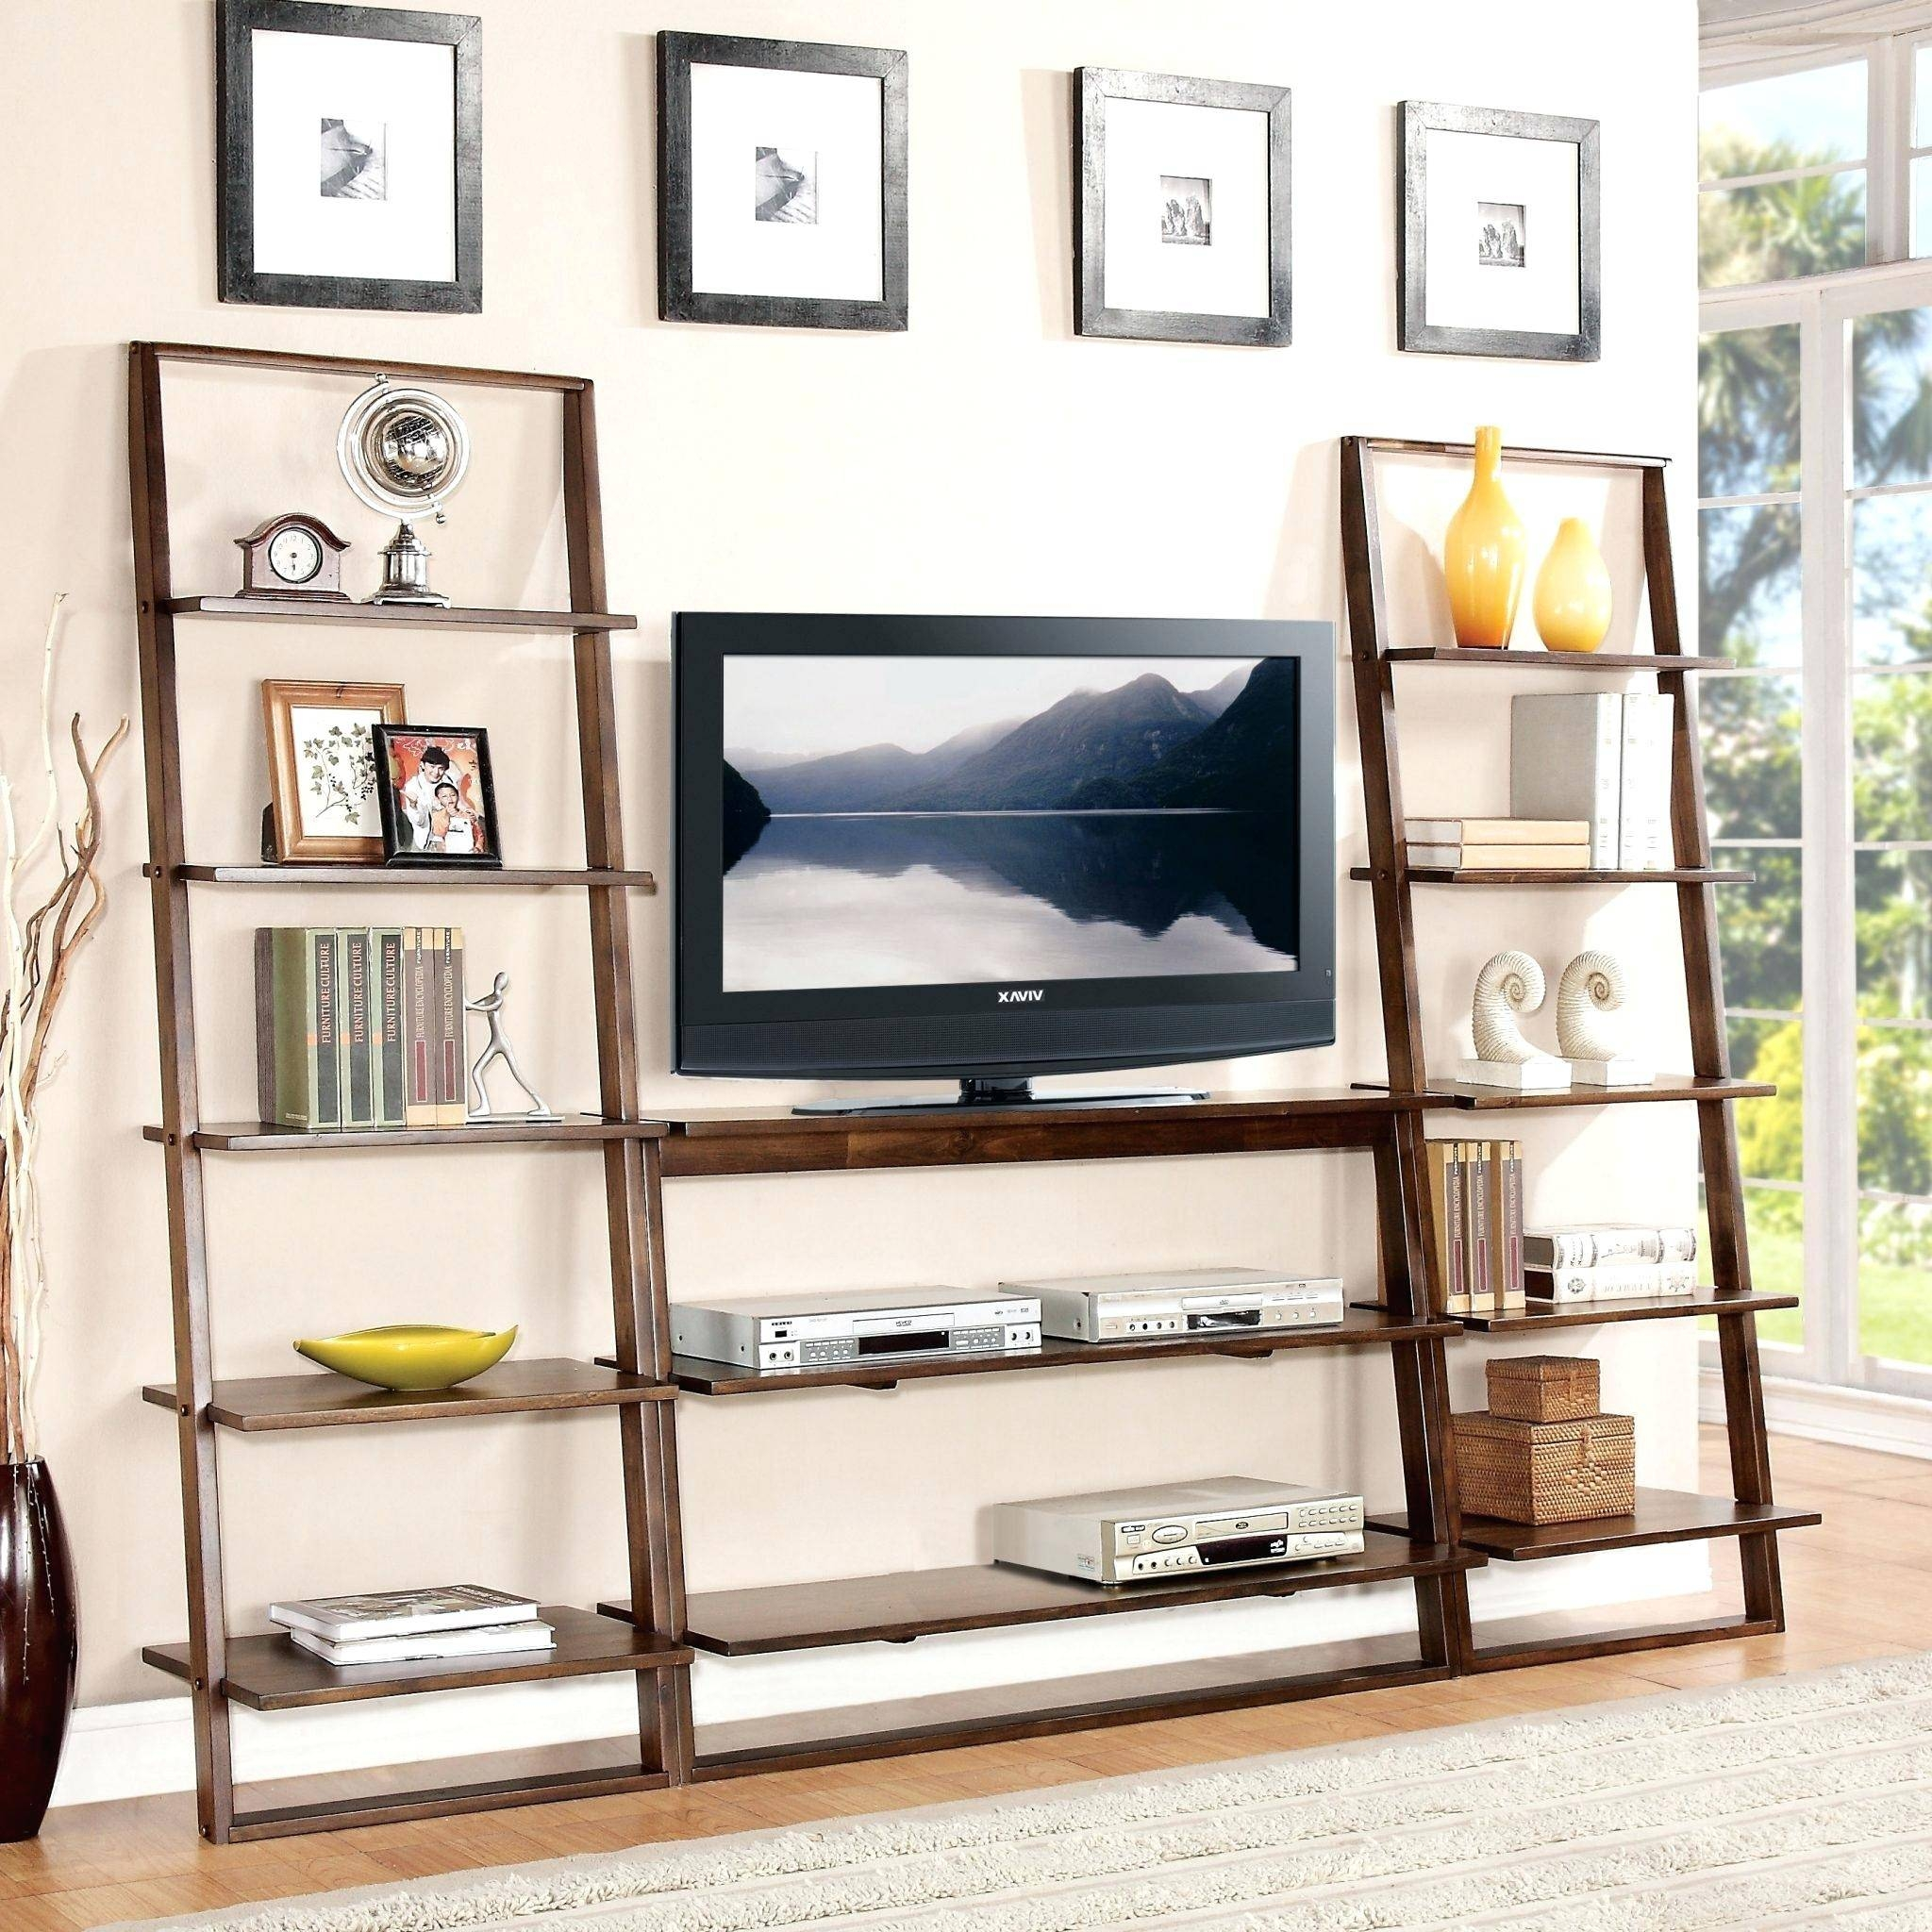 Tv Stand : 96 Flat Screen Tv Stand With Bookshelves Full Size Tv pertaining to Bookshelf Tv Stands Combo (Image 7 of 15)